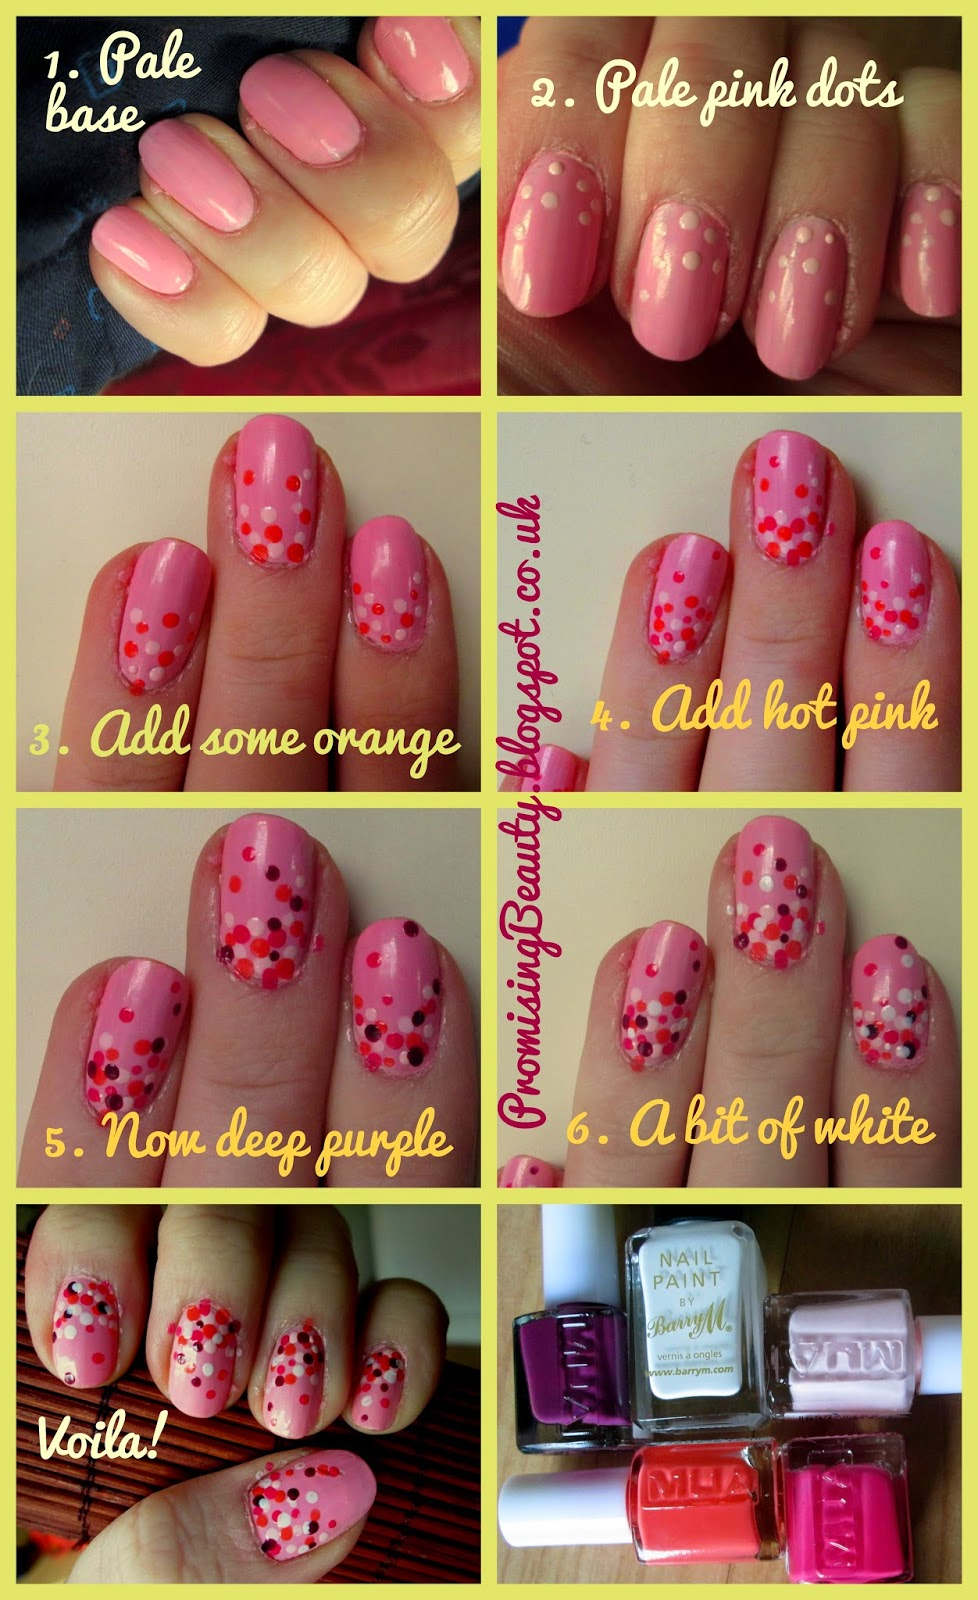 pink polka dot nails, spotty cute nail art. Manicure. Barry M, MUA, pink, orange, purple and white nails. tutorial, step-by-step